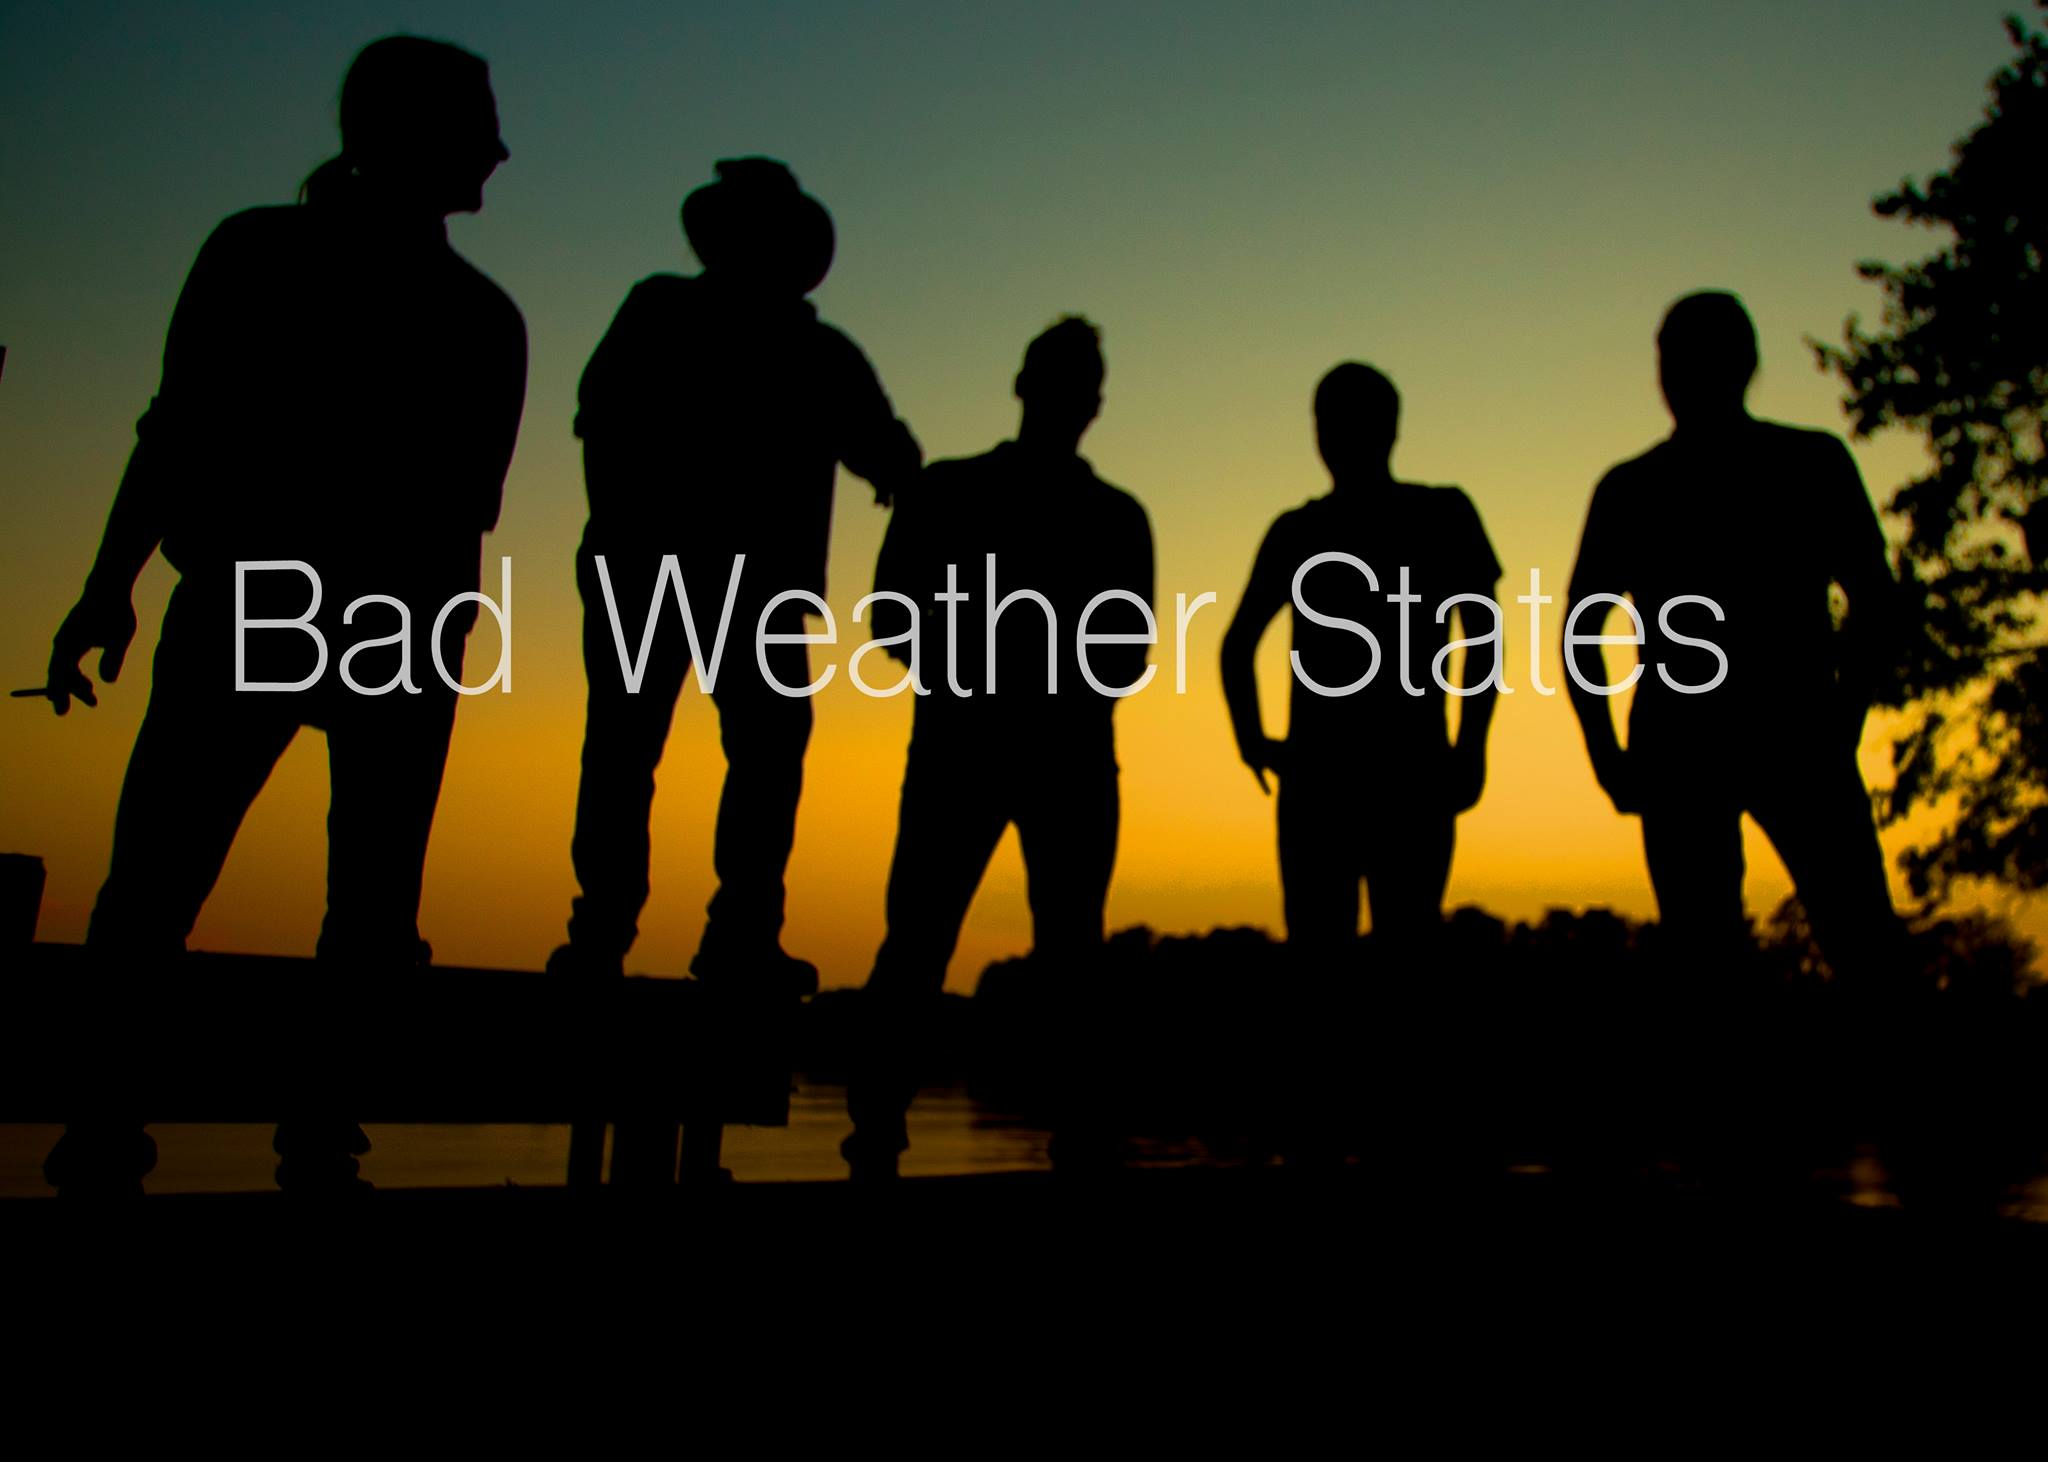 Bad Weather States